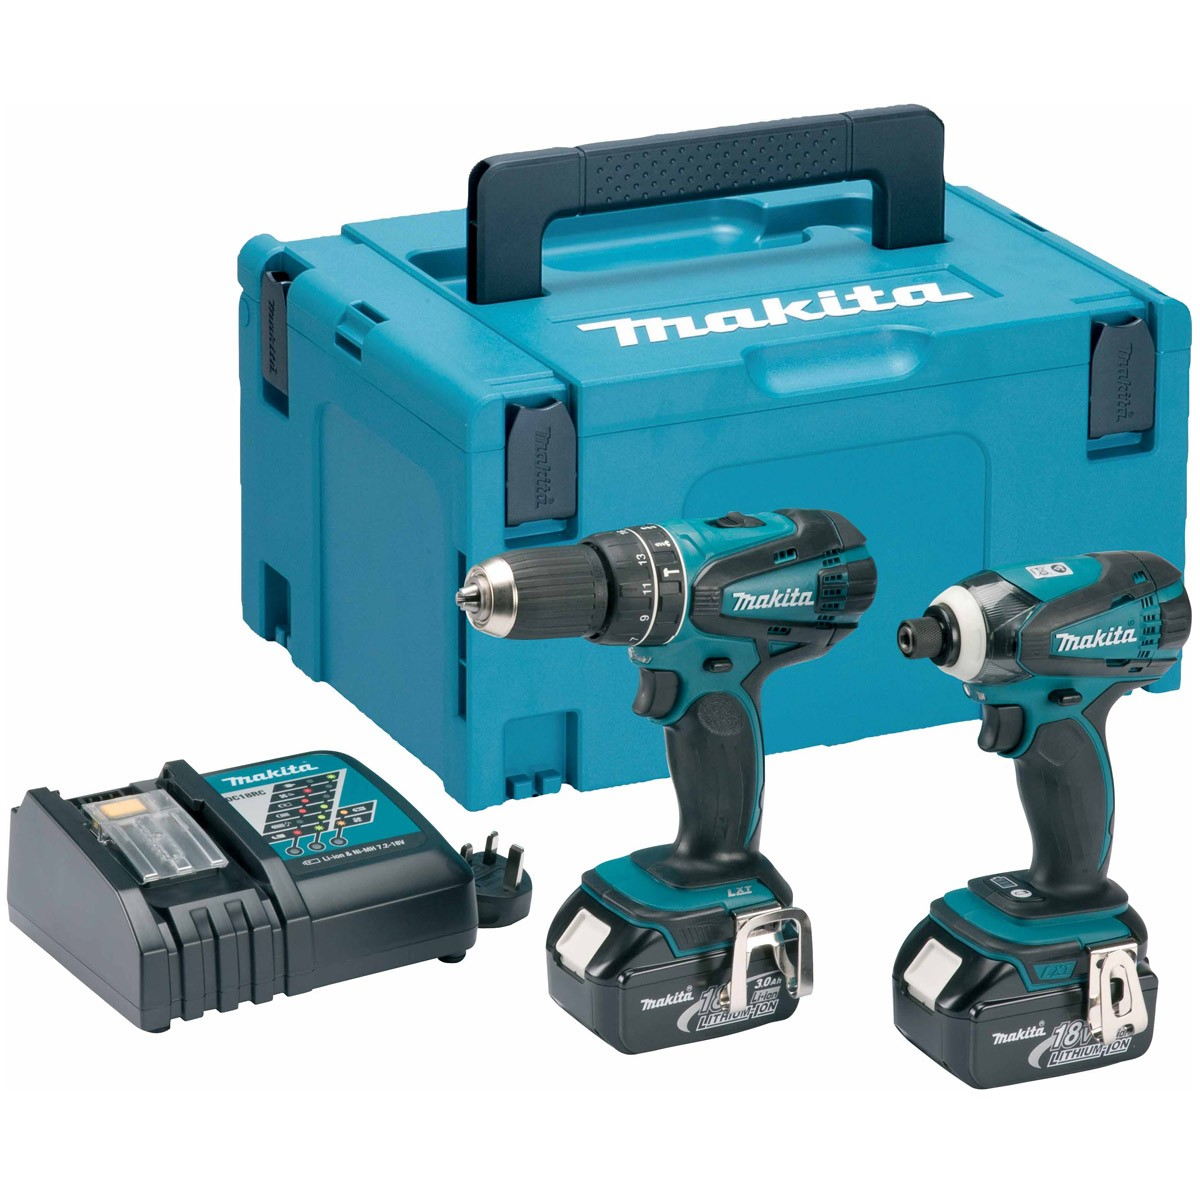 makita dlx2012mj 18v combi drill impact driver kit inc 2x 4ah batts in makpac case powertool. Black Bedroom Furniture Sets. Home Design Ideas